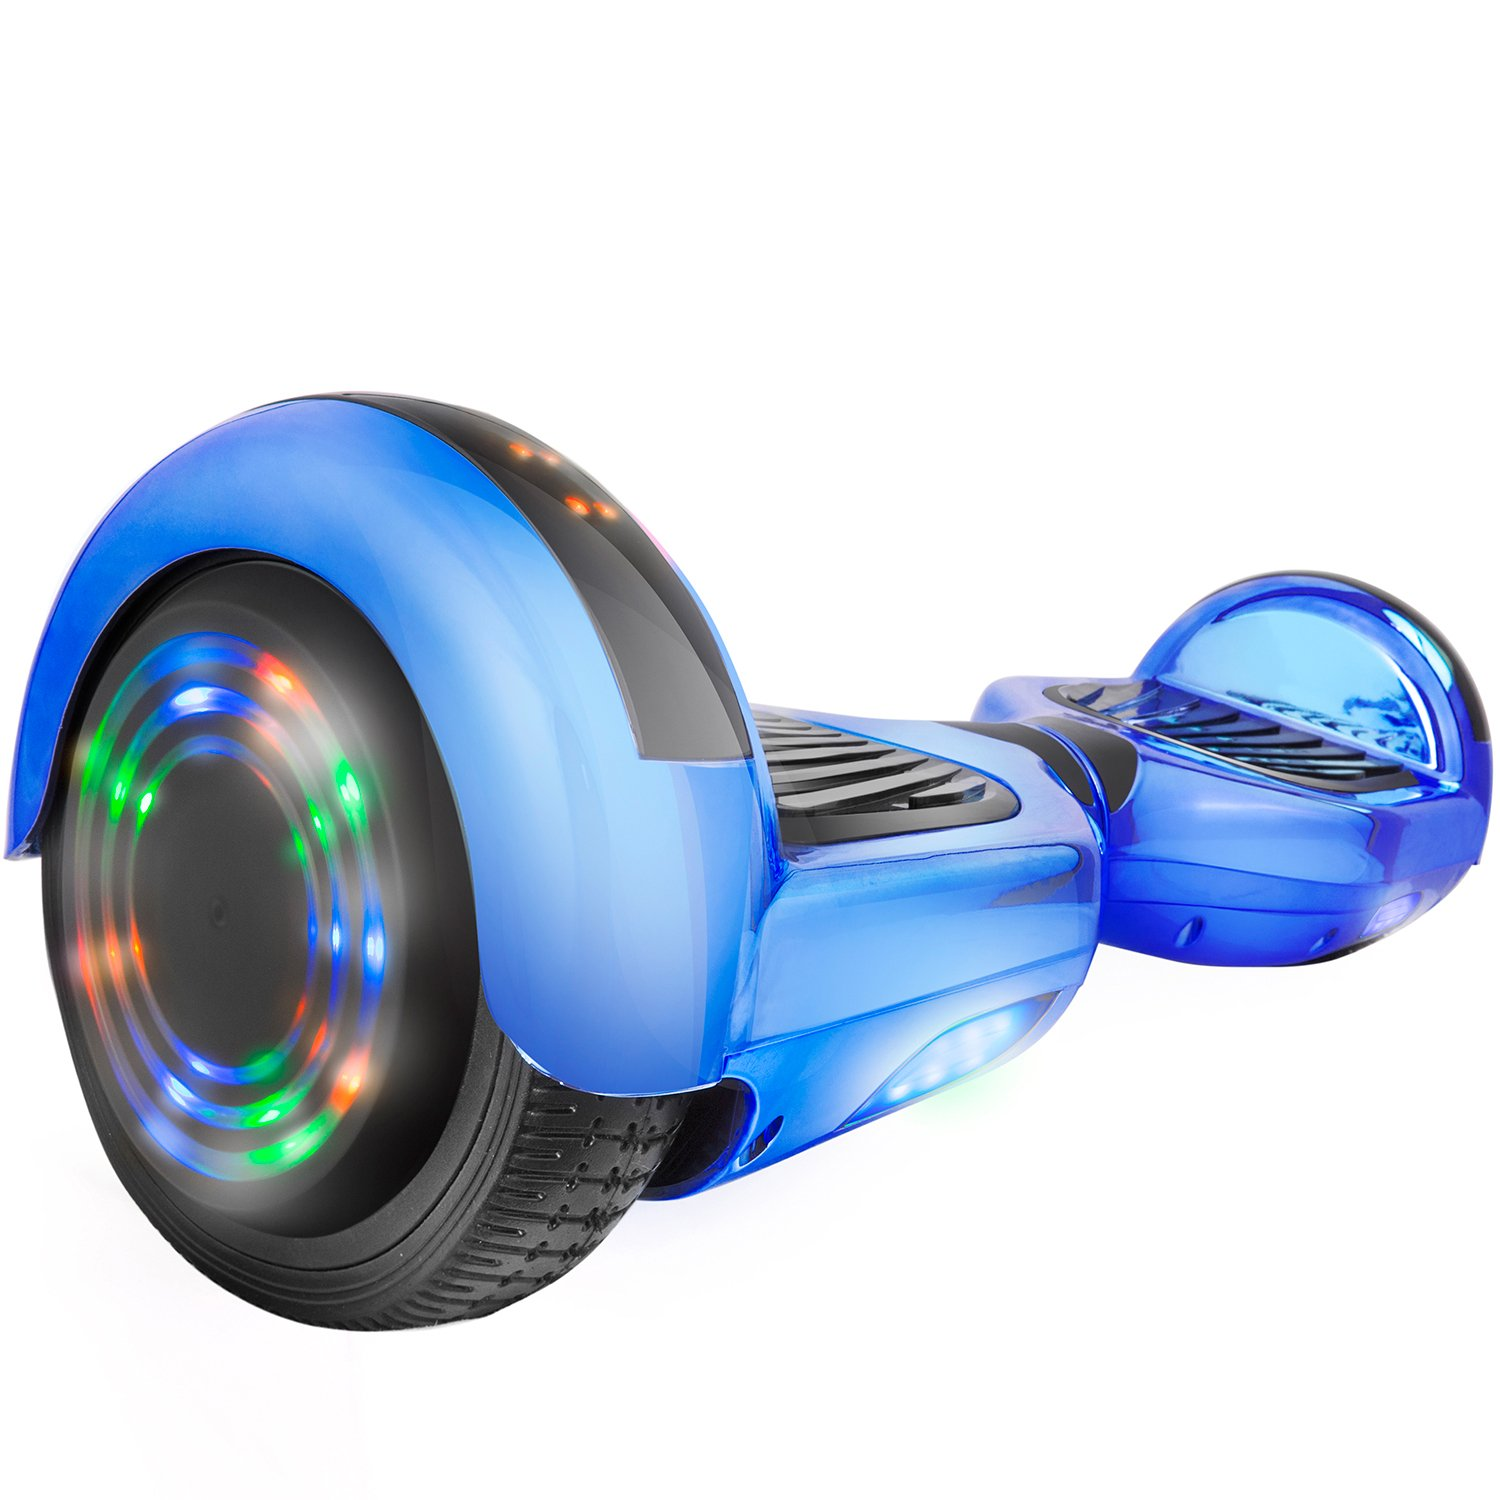 Z1Plus Chrome Self-Balancing Hoverboard w/Bluetooth Speaker, UL2272 Certified (Blue) by AOBSmartgo